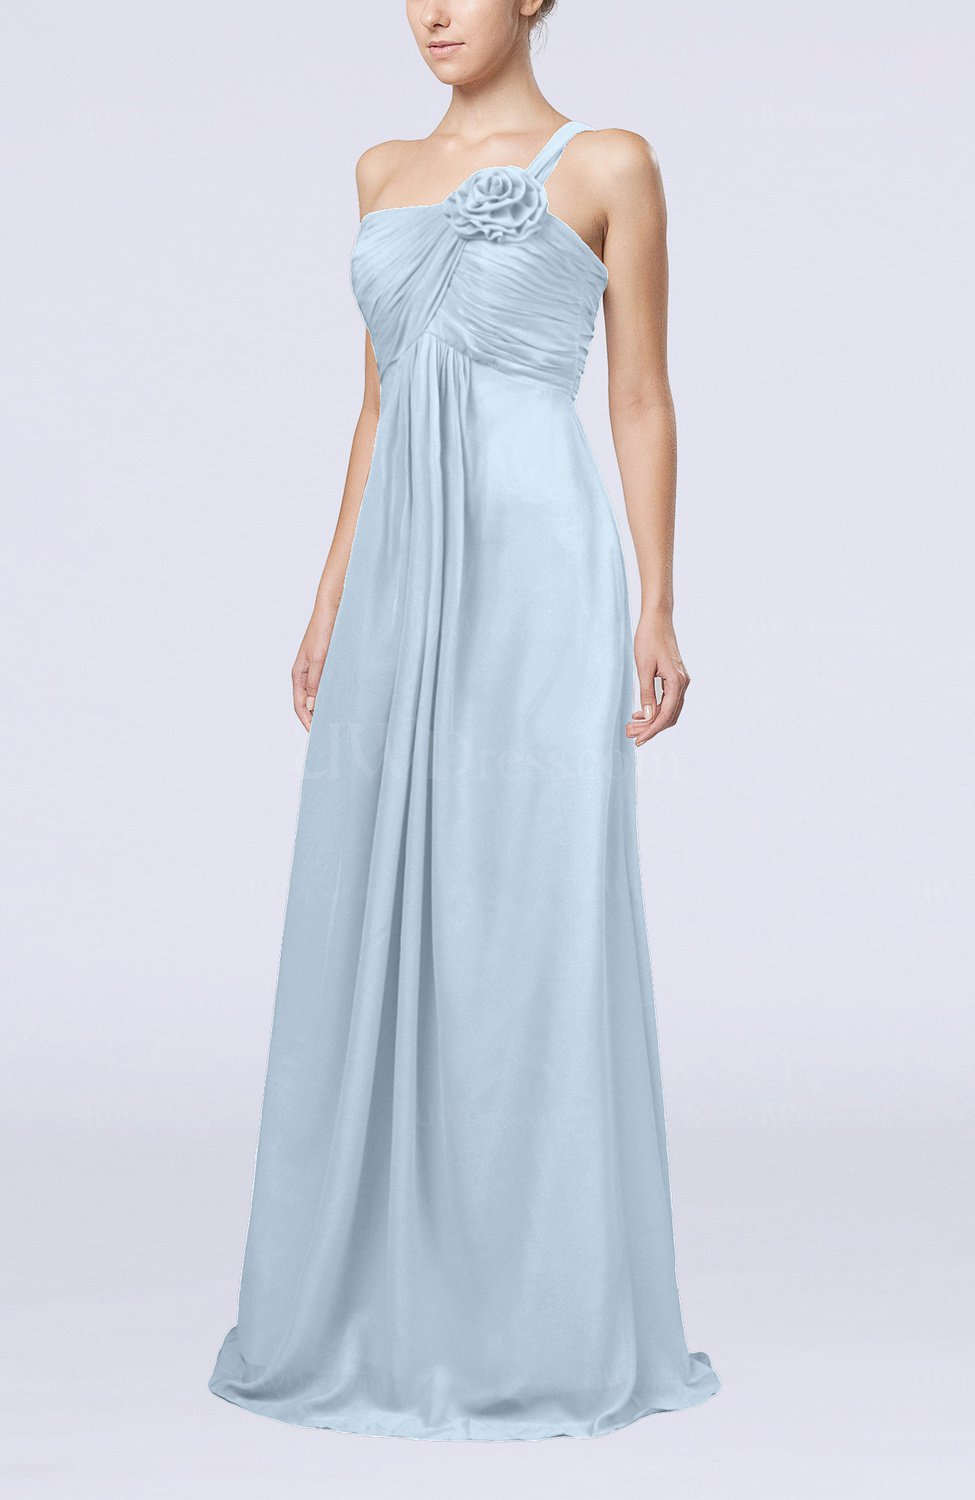 eec7e7a1d56 Ice Blue Simple One Shoulder Sleeveless Zipper Chiffon Pleated Mother of  the Bride Dresses (Style D50314)